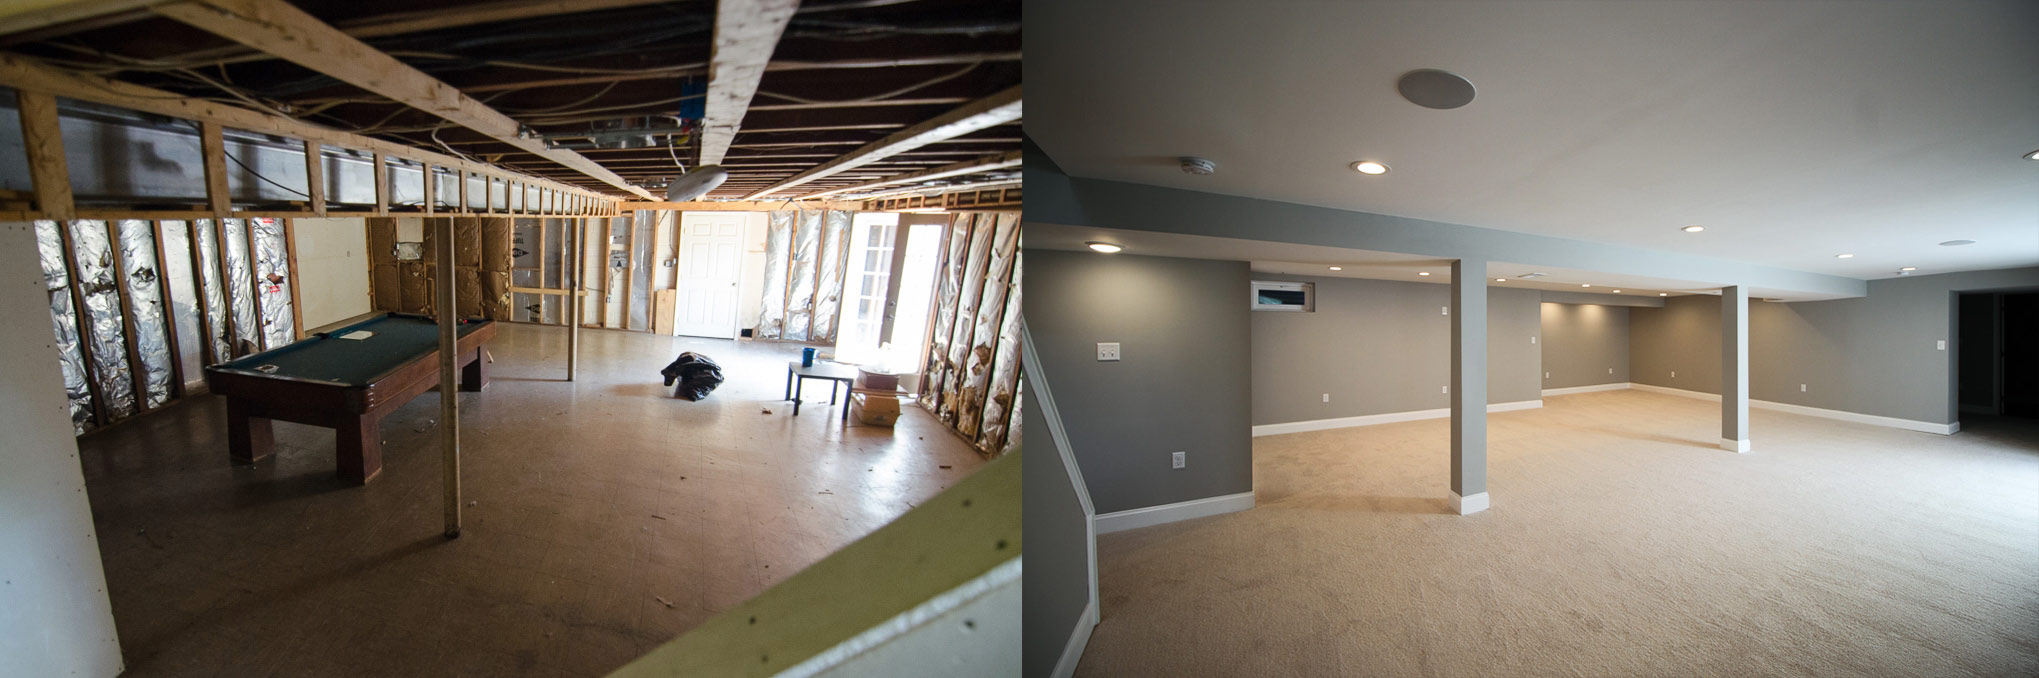 Fully finished basement in Joppa road Baltimore Maryland flip